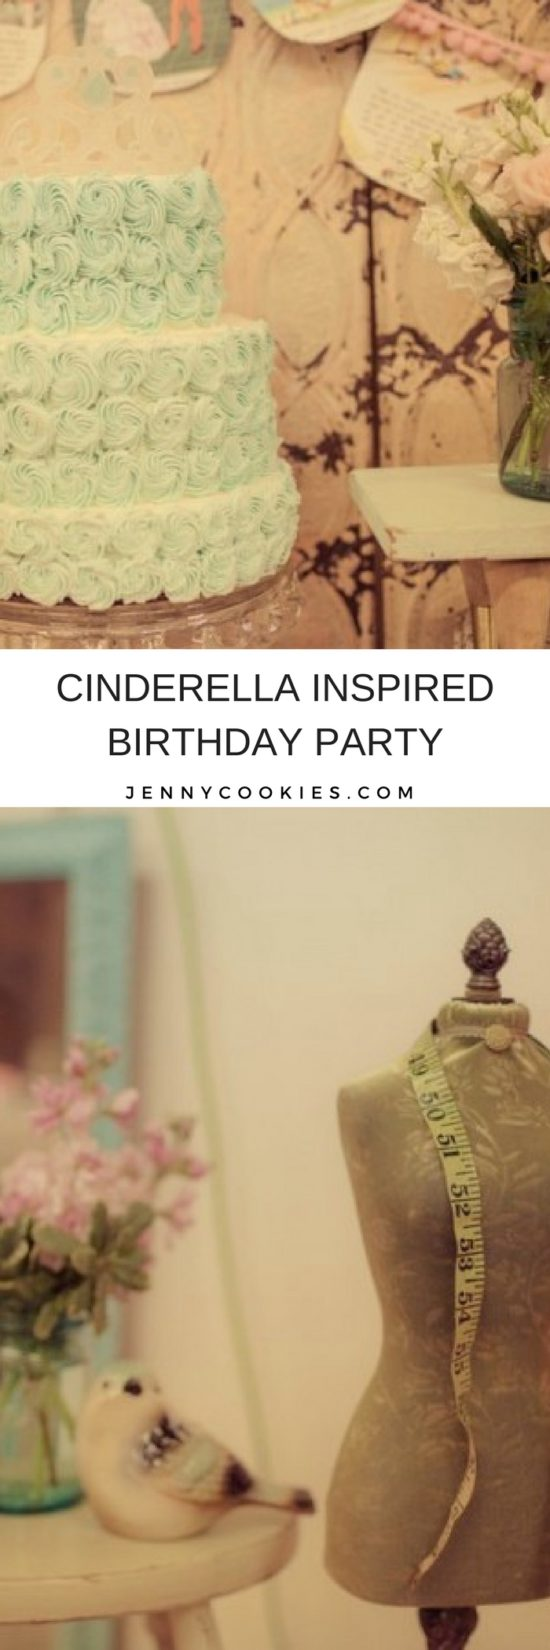 Cinderella Inspired Birthday Party | Disney themed birthday parties | birthday party ideas for kids | kids birthday parties | girl themed birthday party | Cinderella party ideas || JennyCookies.com #cinderella #disneyparty #kidsbirthdayparty